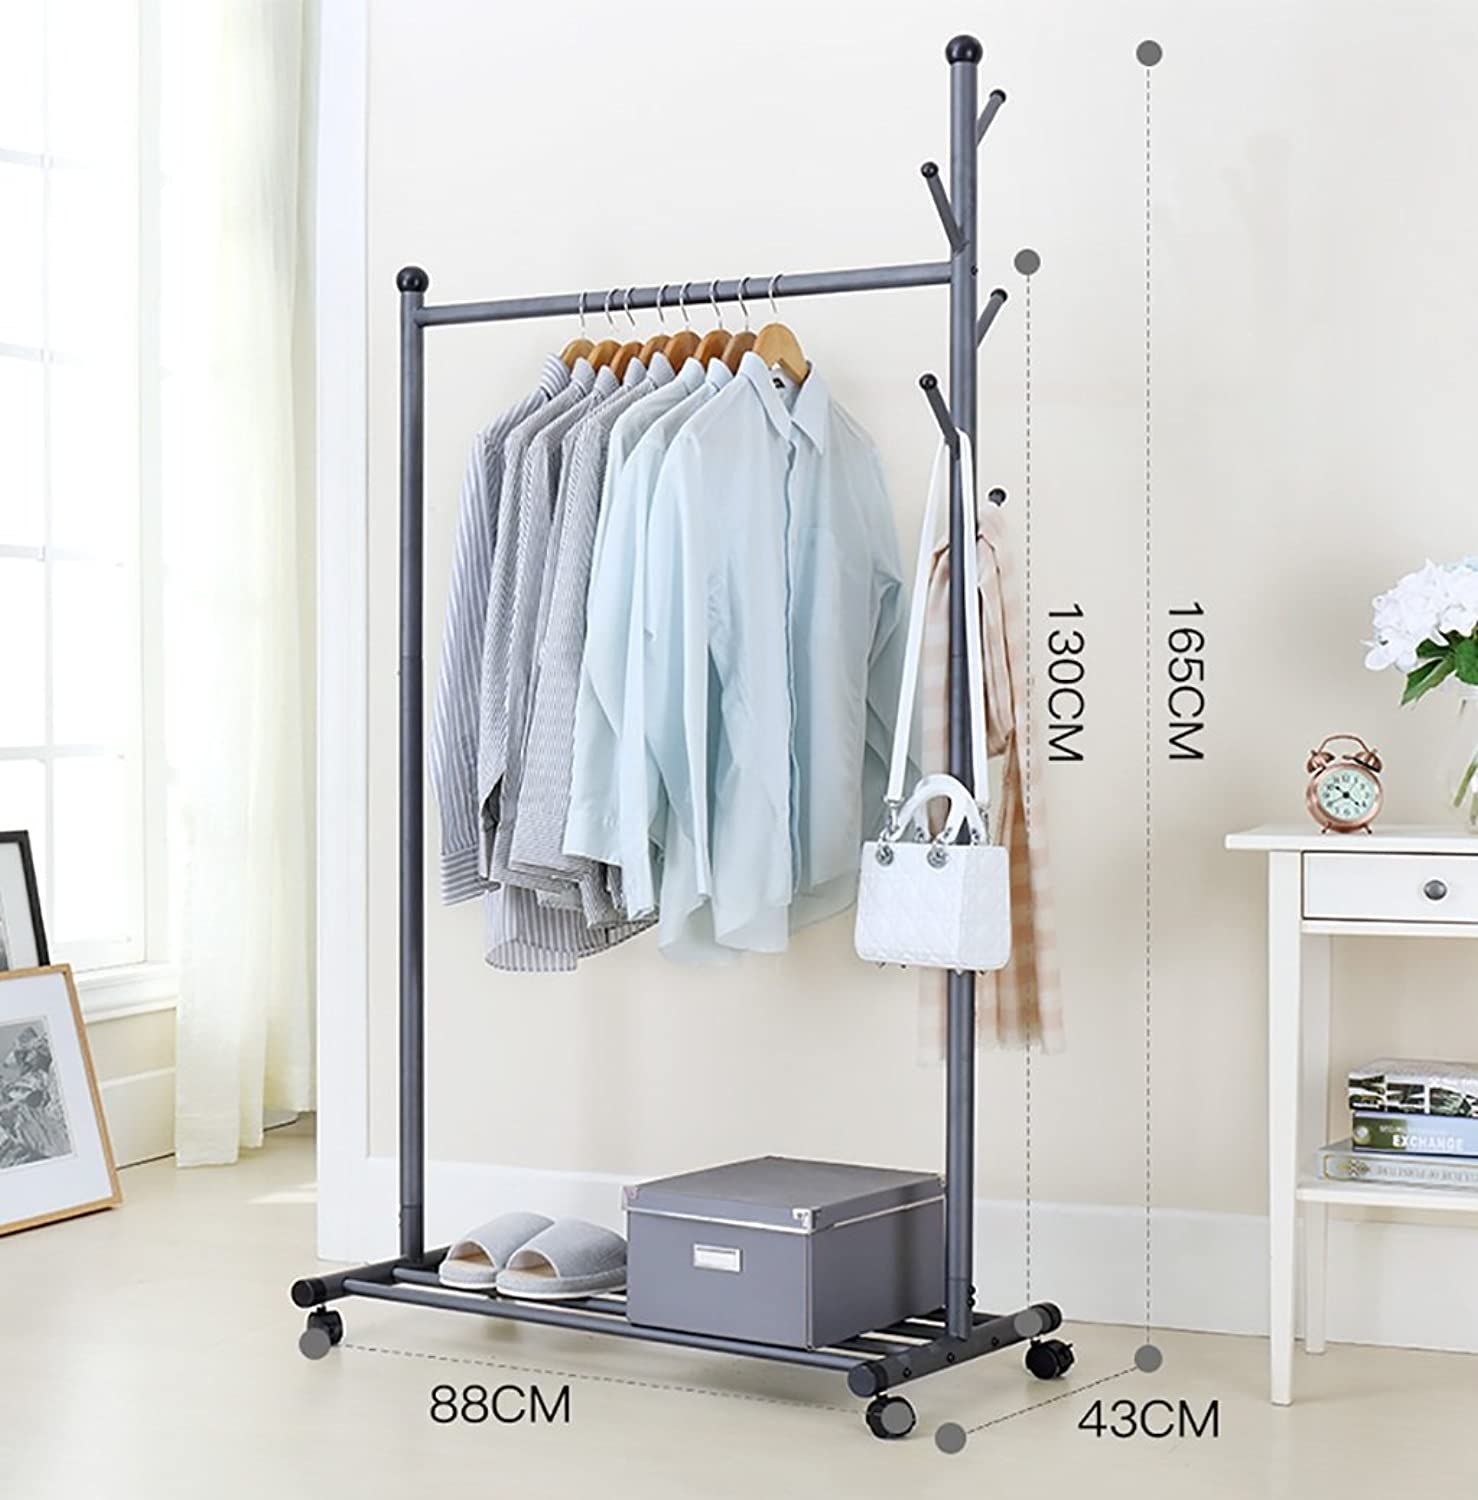 Metal Coat Rack with Hanging Hooks Coat Stand Hats Bags Multi-Purpose Storage shoes Bench Stand with Top Rod for Home Office Hallway Bedroom 88  43  165CM